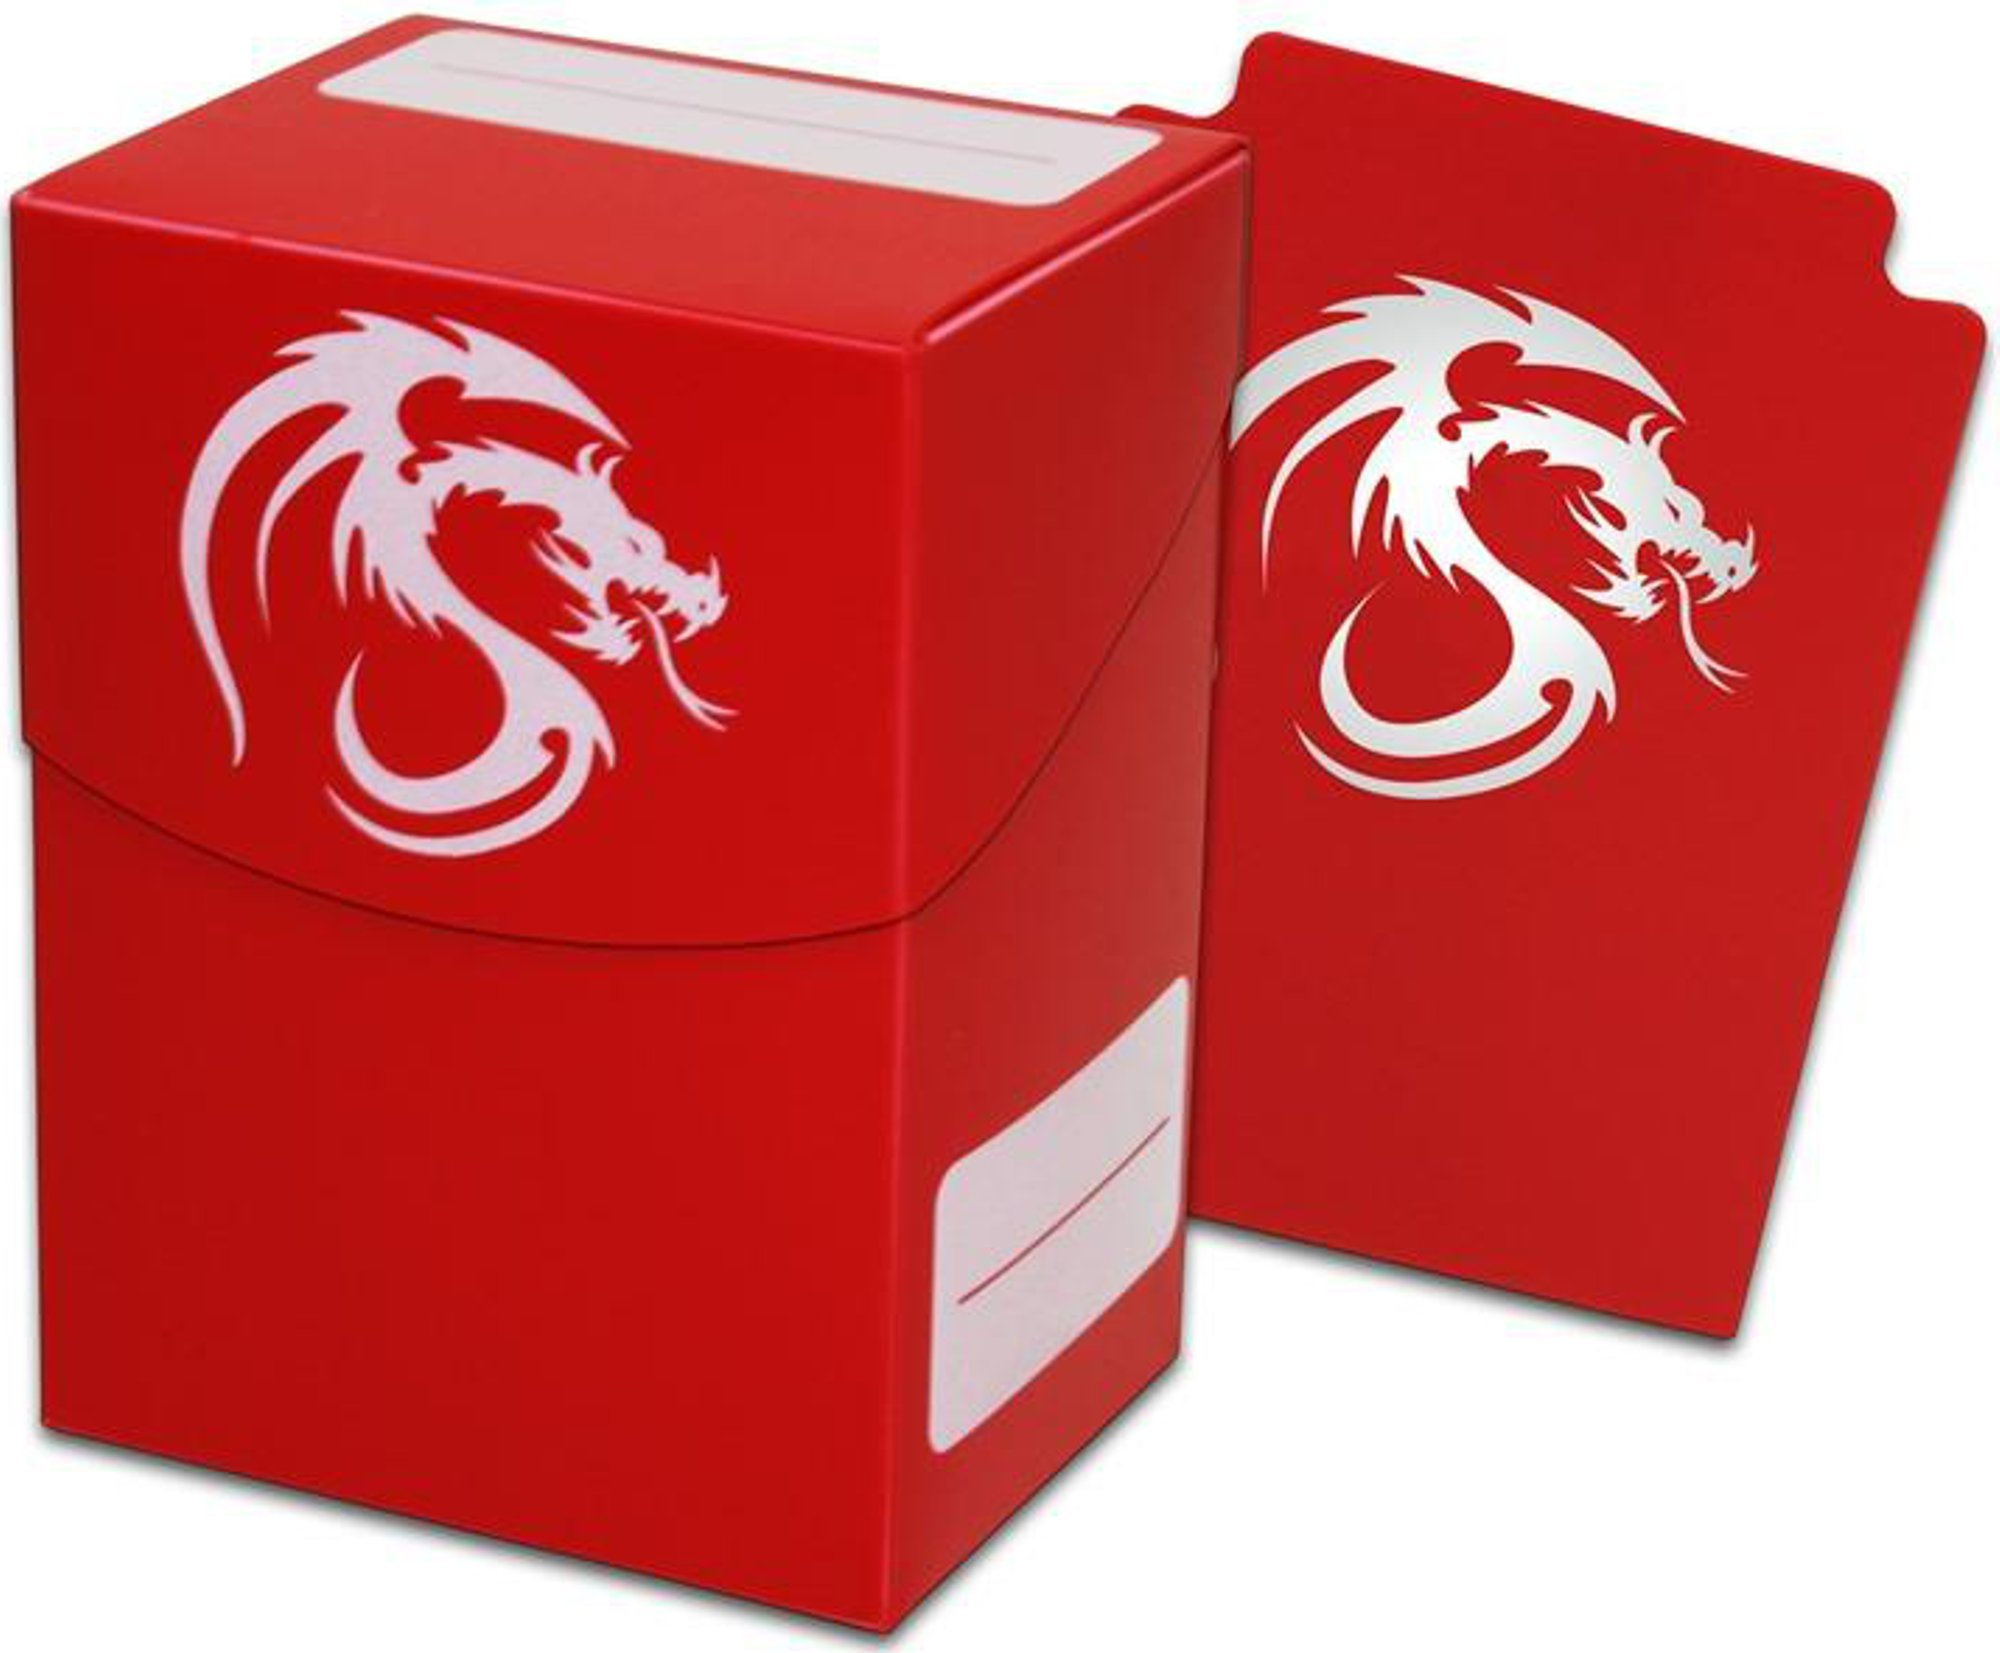 Red Trading Card Boxes - Gaming Deck Cases - Each Holds 80 Cards - DC-RED - (90 Boxes)